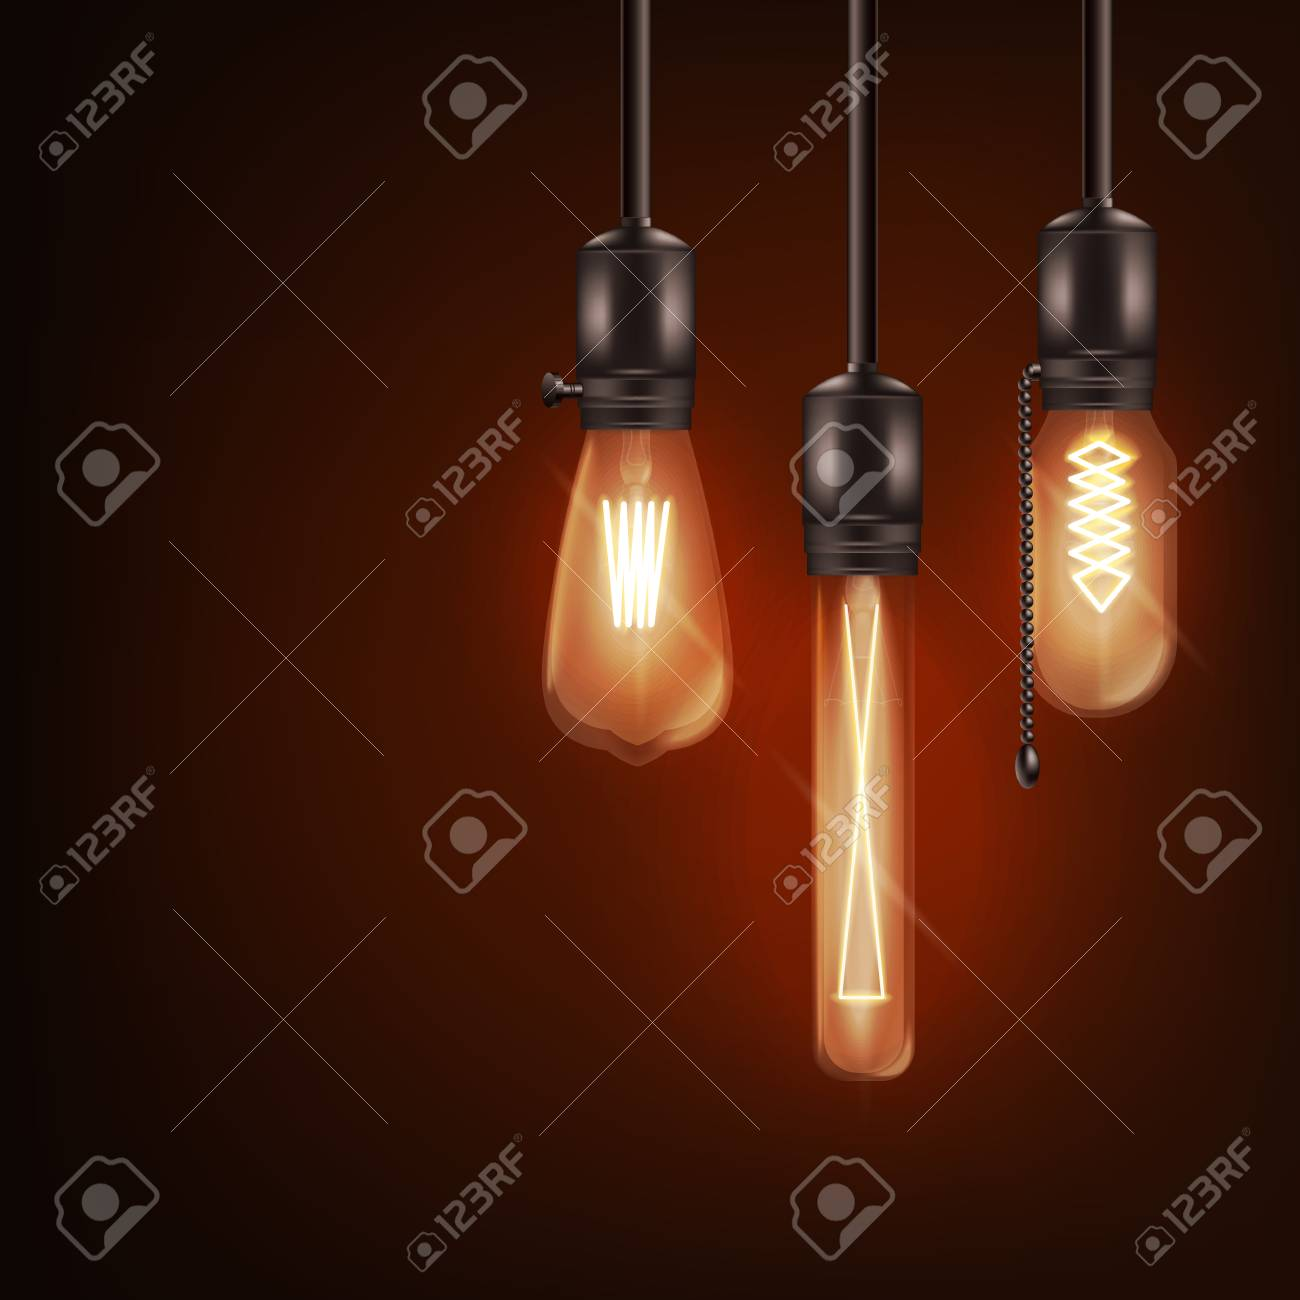 Set of 3d different shaped glowing light bulbs hanging on wires realistic style, vector illustration isolated on dark background. Retro incandescent Edison lamps design for loft or vintage interior - 128170153